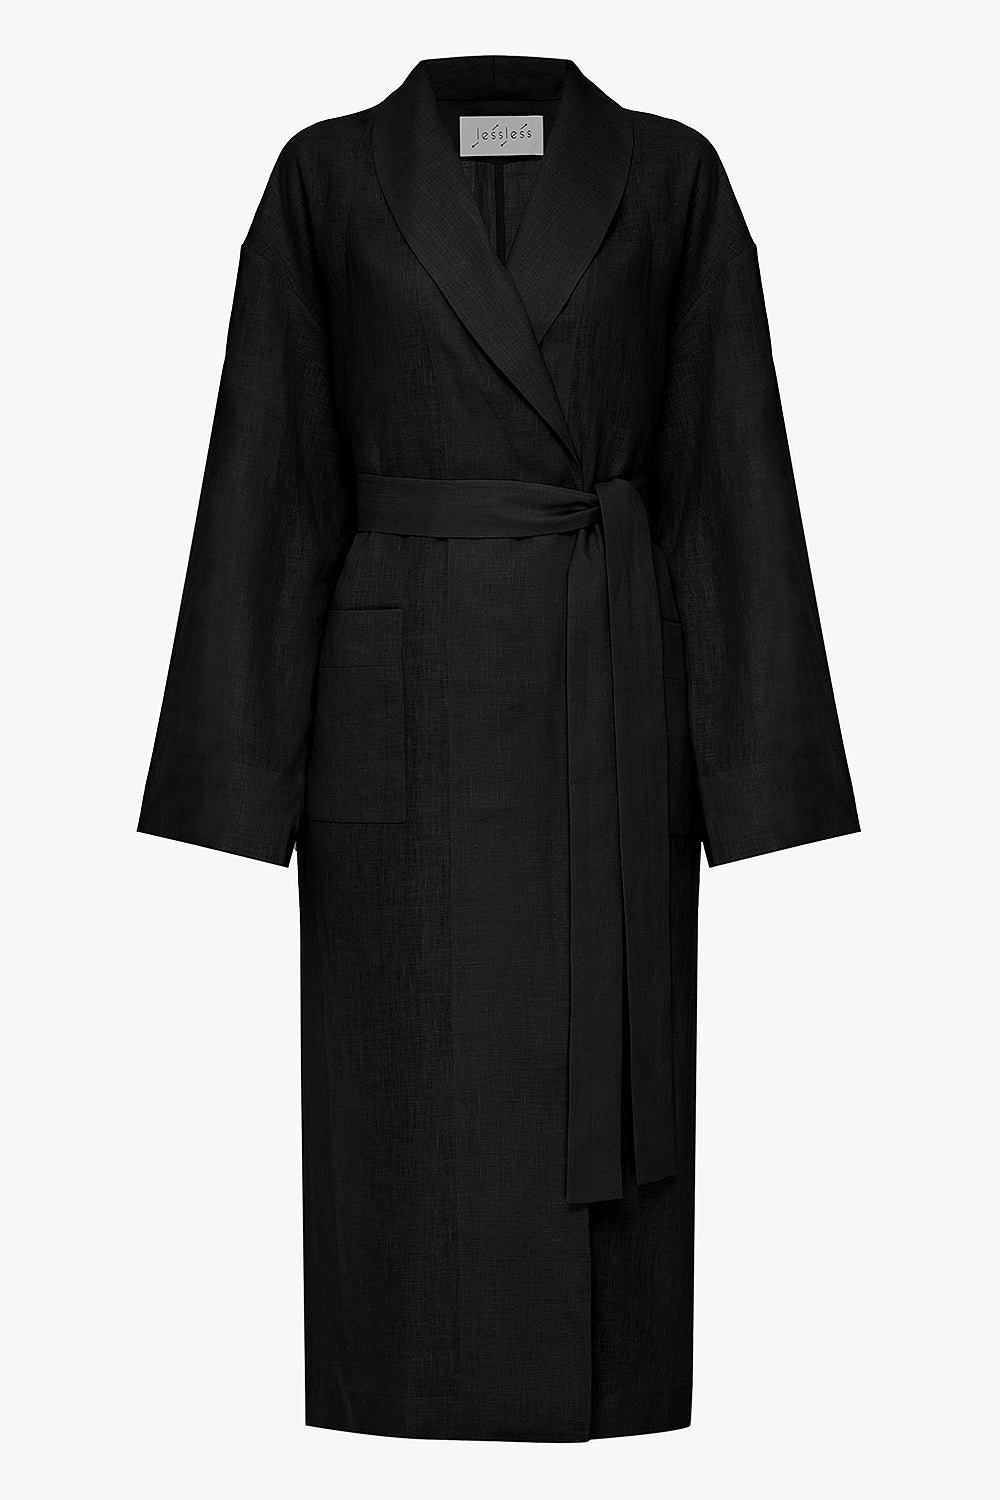 Basic line robe in black